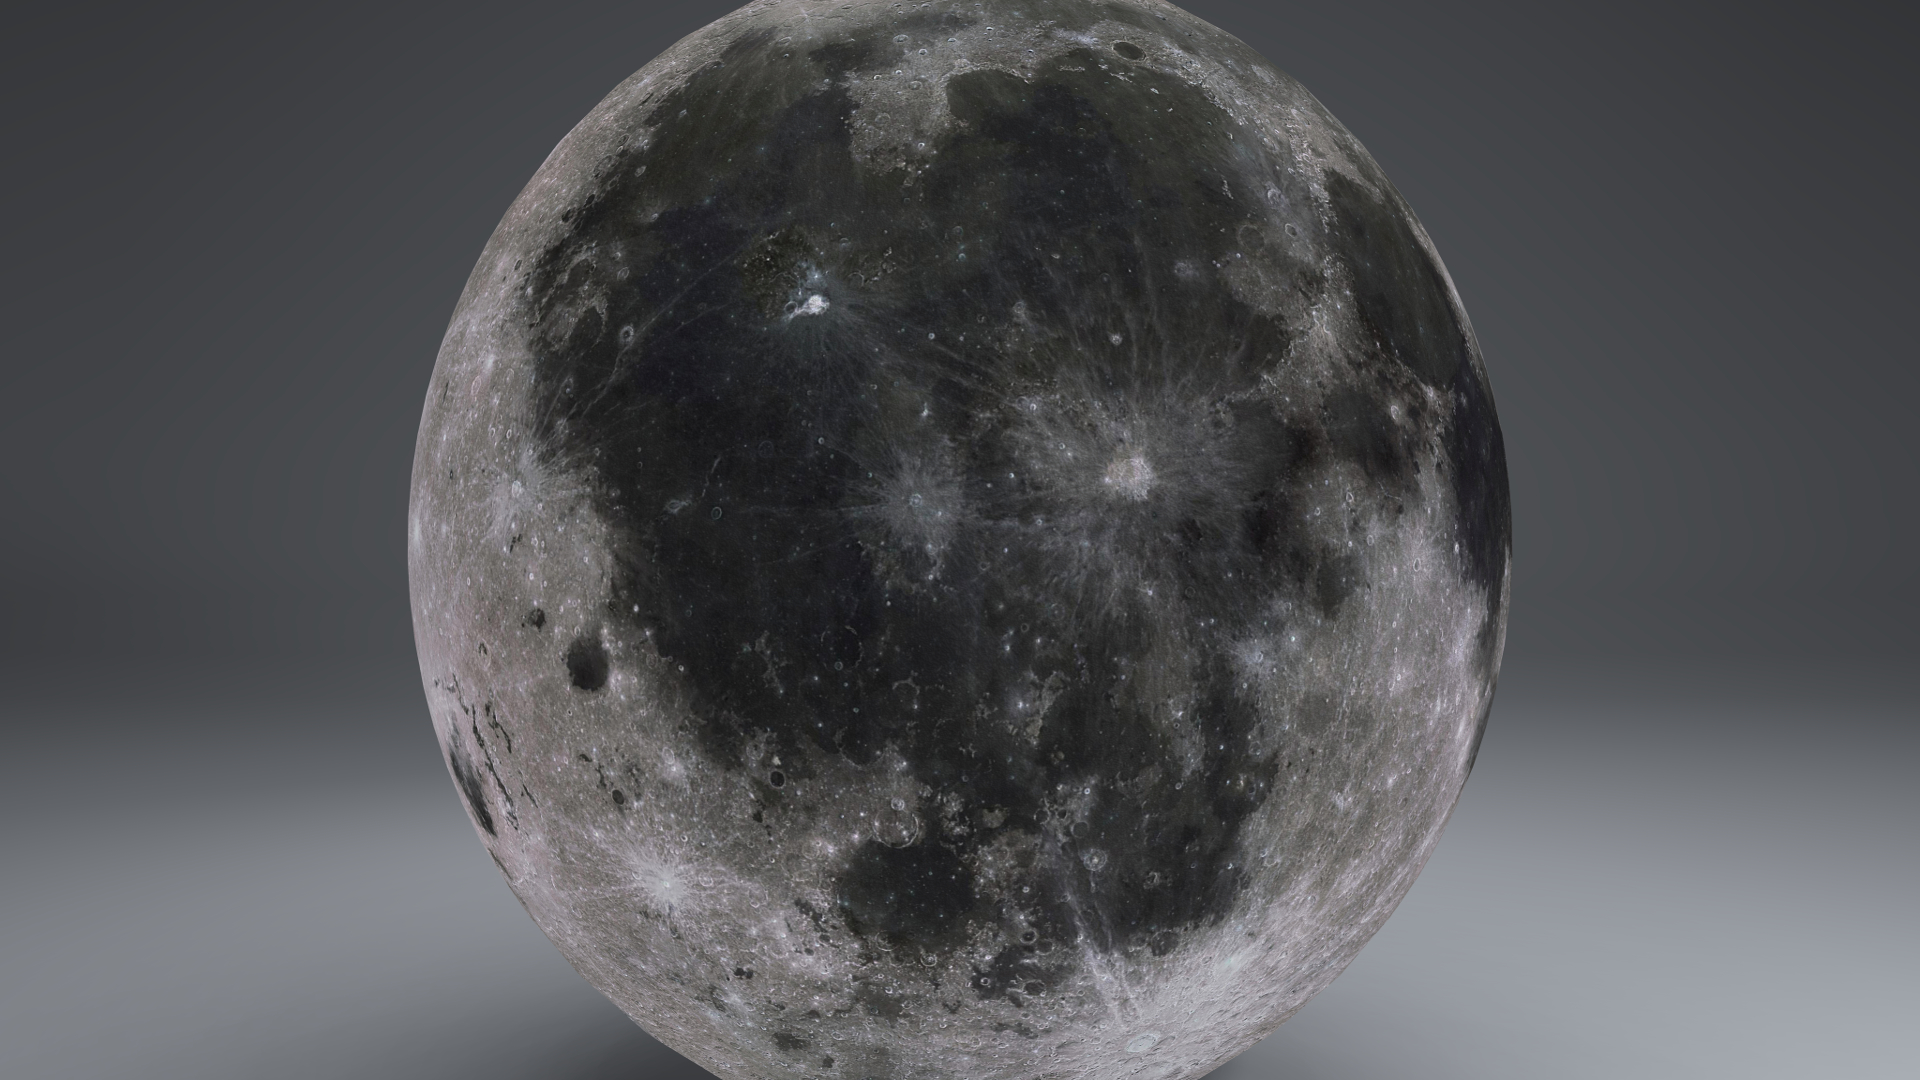 moonglobe 4k 3d model 3ds fbx blend dae obj 221758